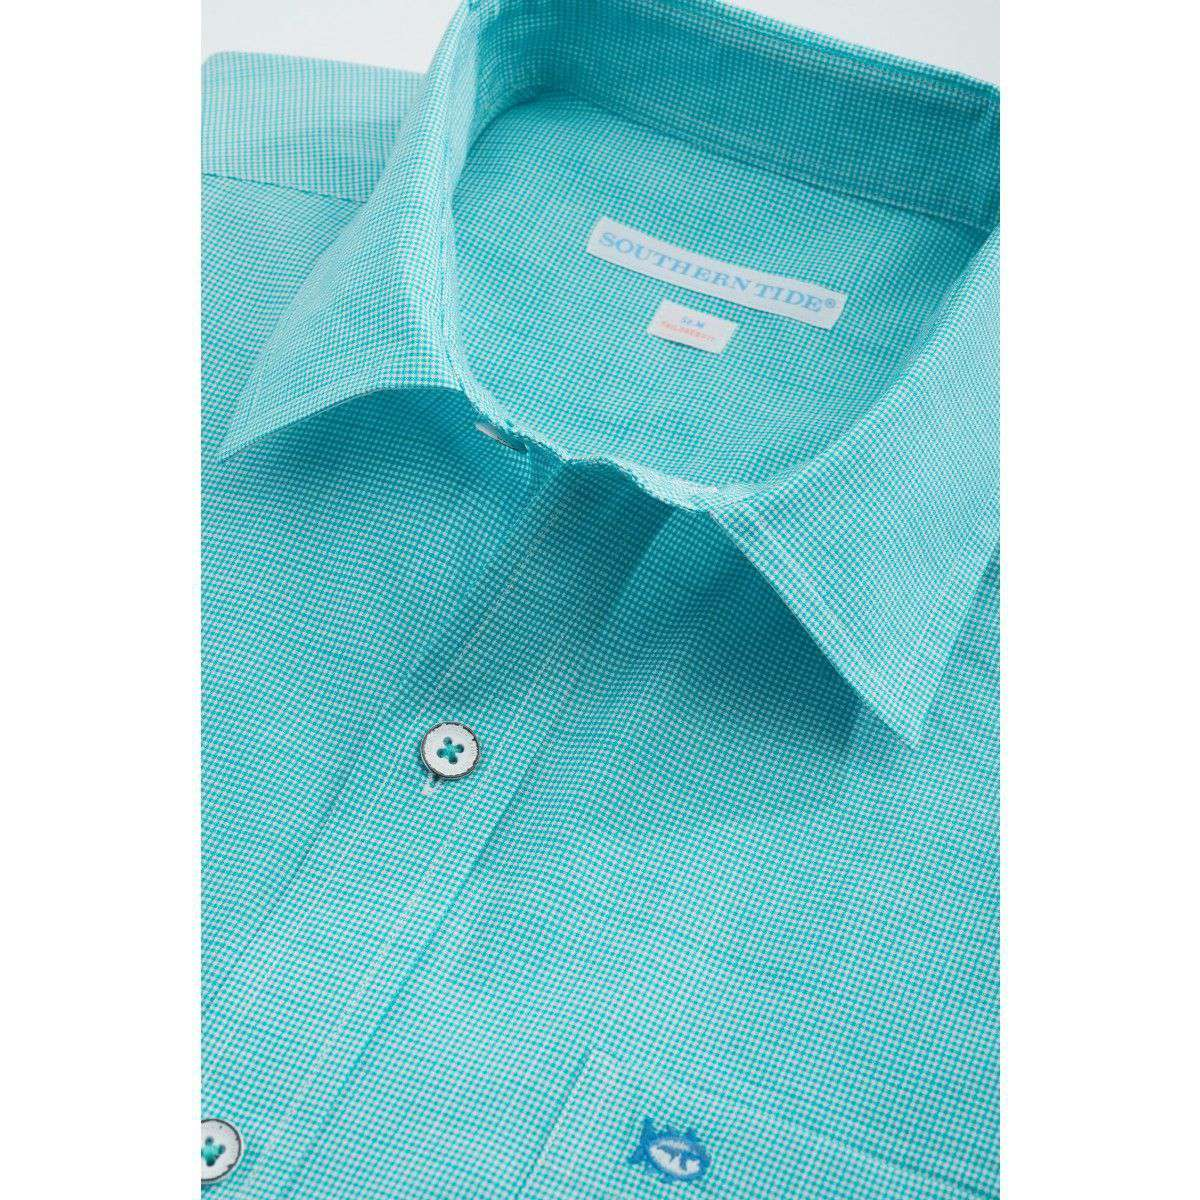 Men's Button Downs - Tailored Short Sleeve Cast Off Check Sport Shirt In Tidal Wave Green By Southern Tide